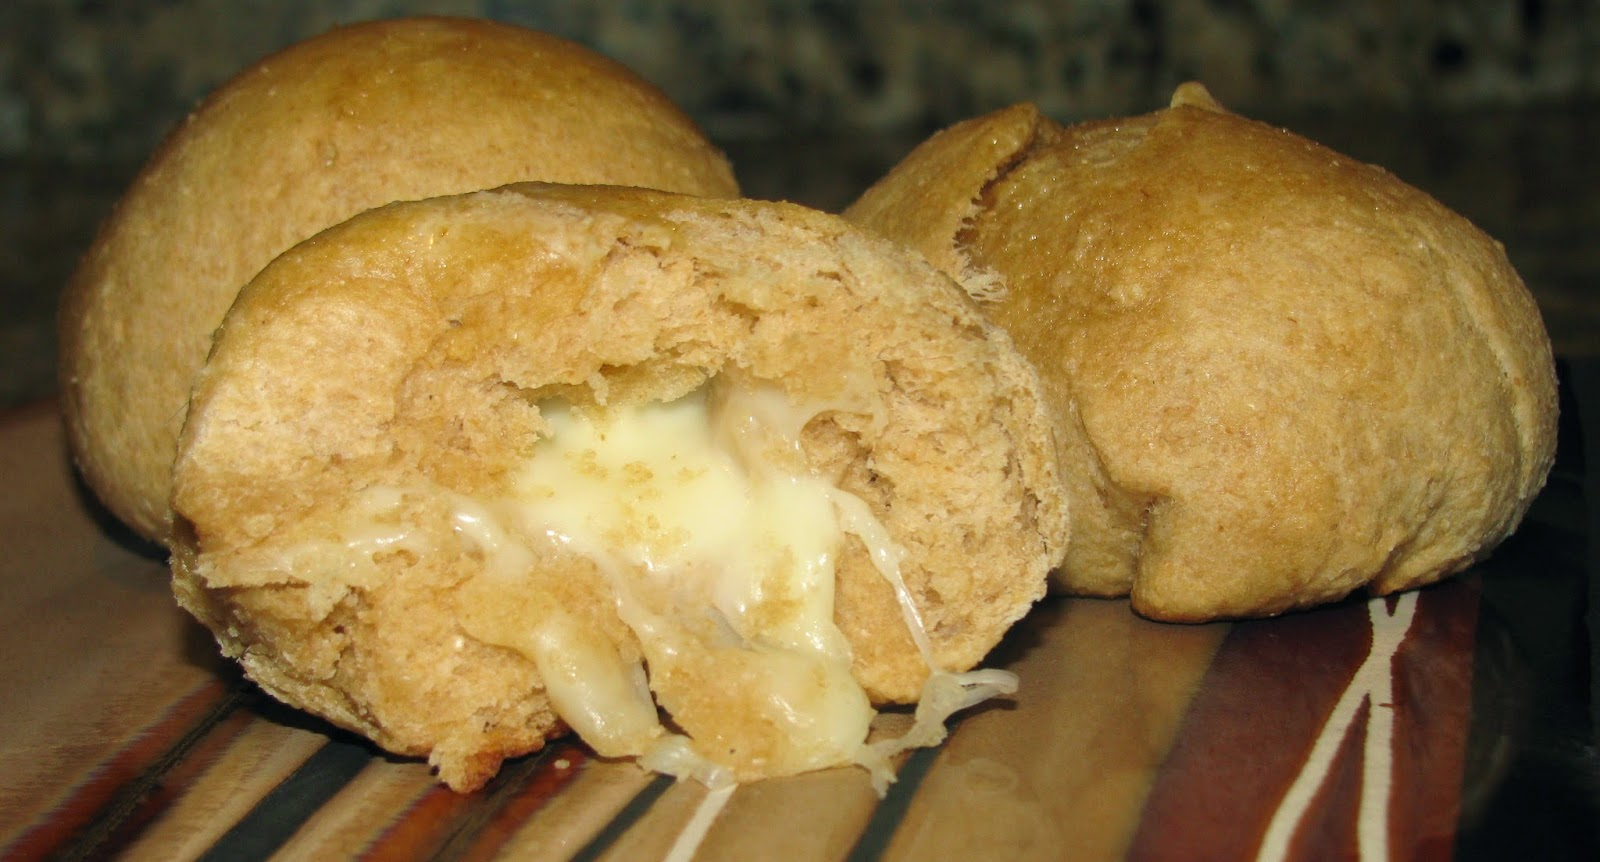 Valerie's Attempt at Pondering: Stuffed Cheese Buns